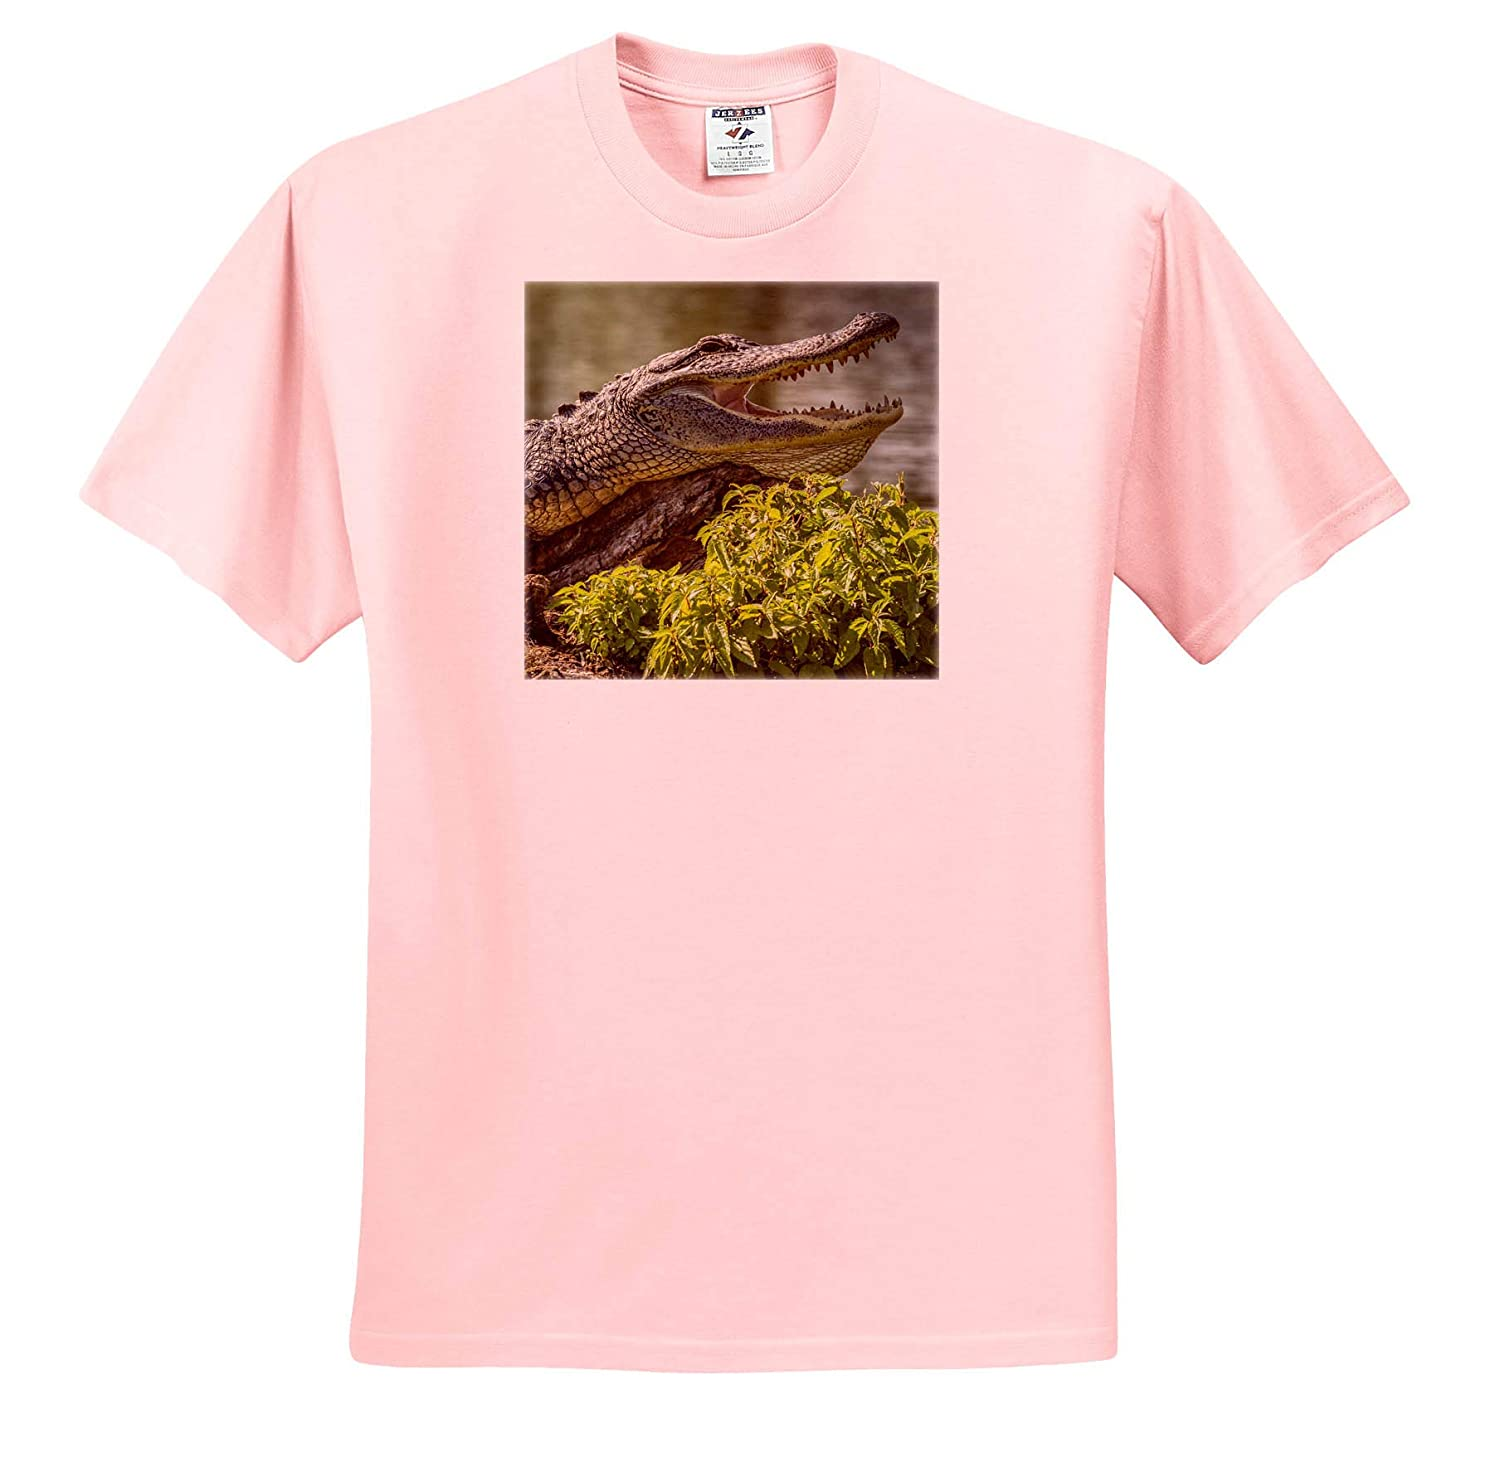 ts/_314833 Alligators 3dRose Danita Delimont Alligator Sunning on Log Atchafalaya - Adult T-Shirt XL Louisiana USA